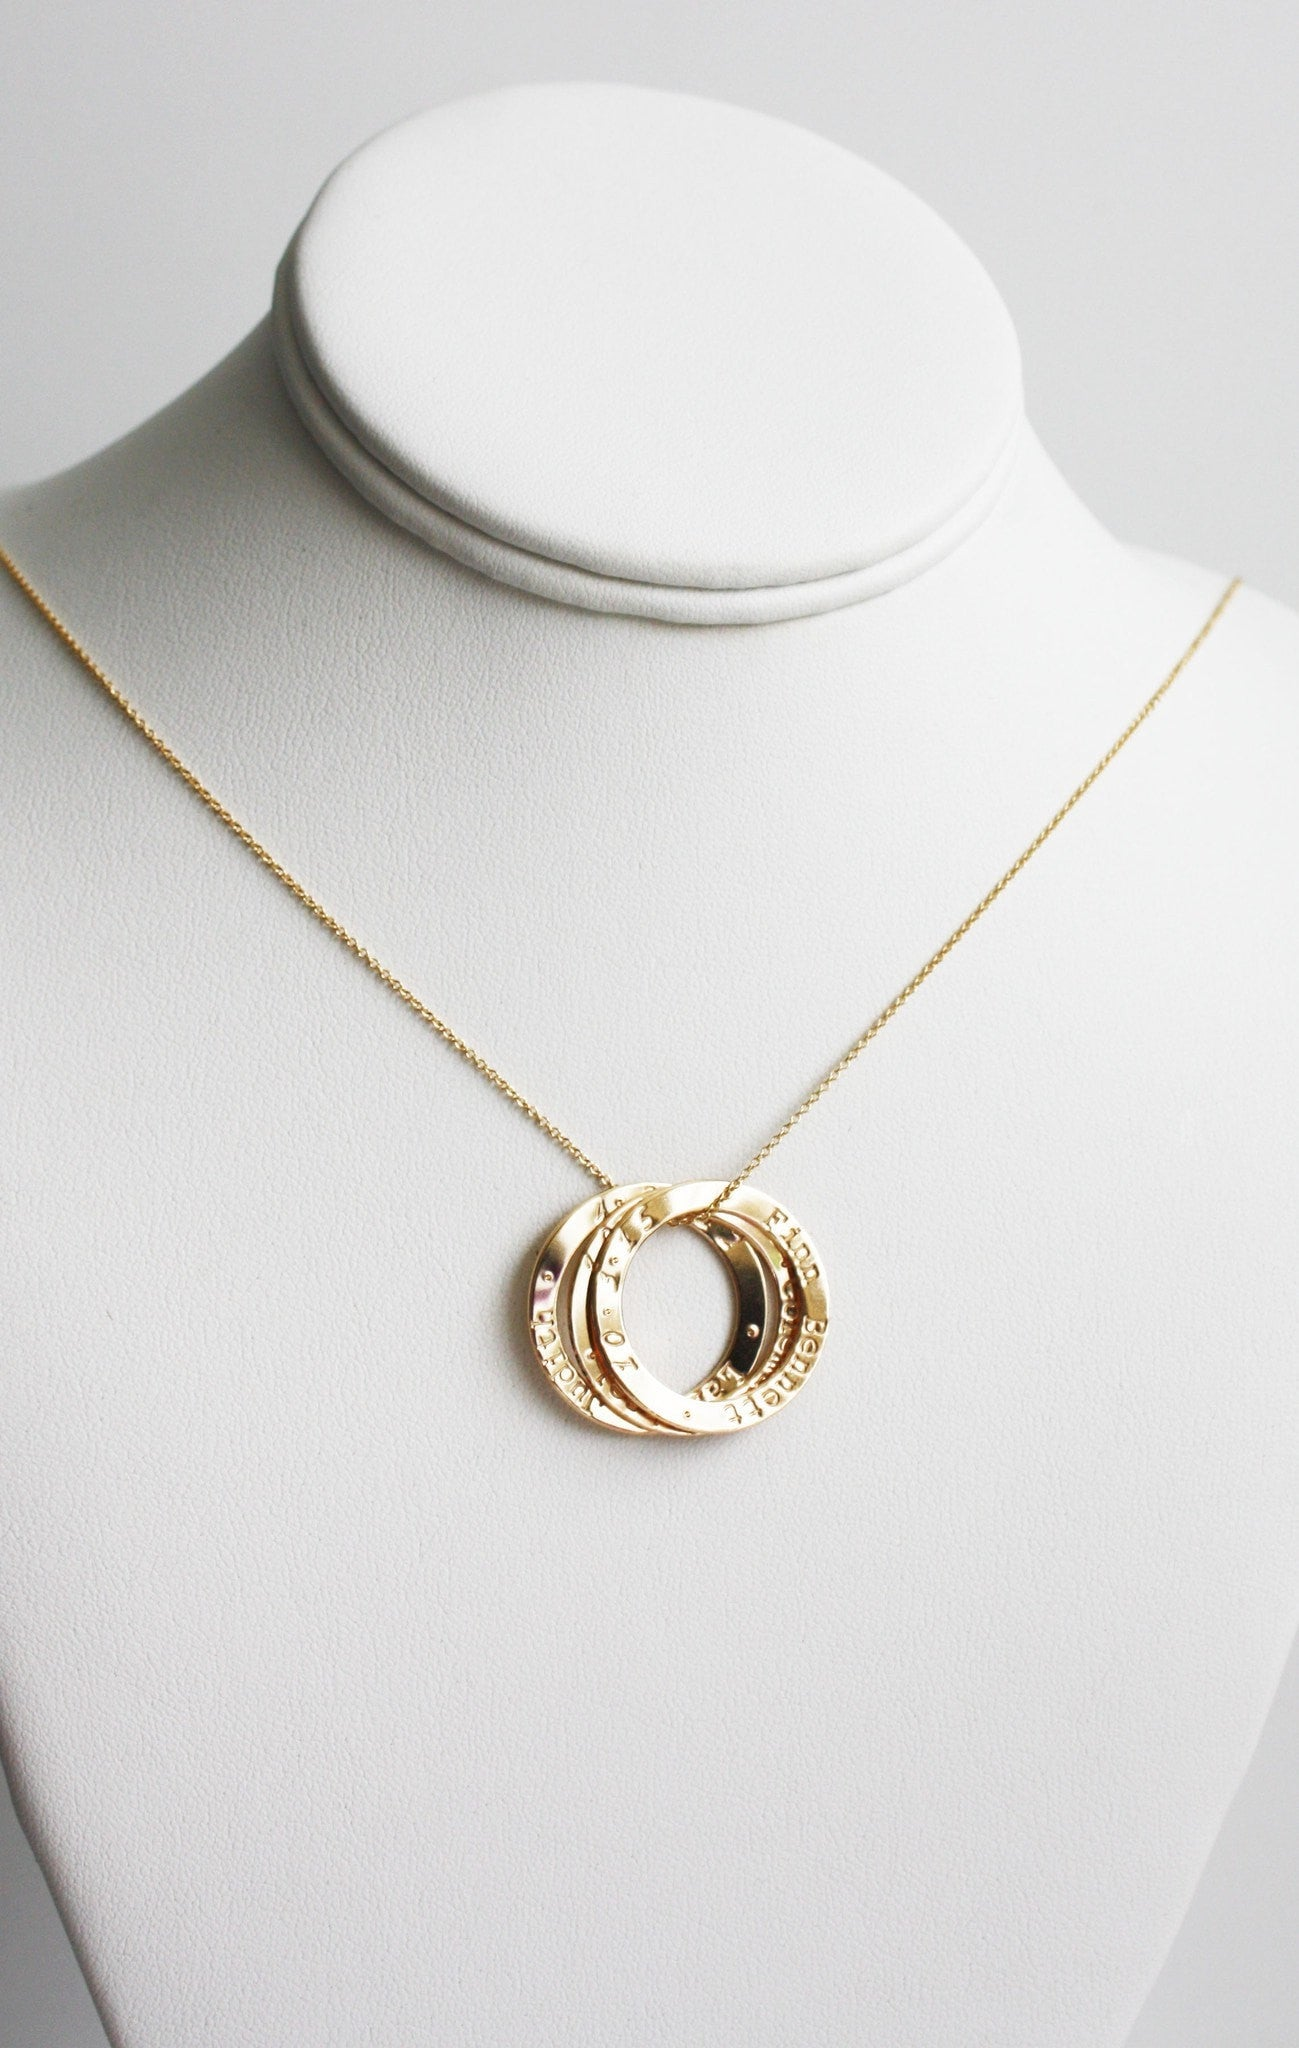 simple necklaces wedding necklace from designs gold item charming jewelery collar long pendant heart jewelry fashion woman in